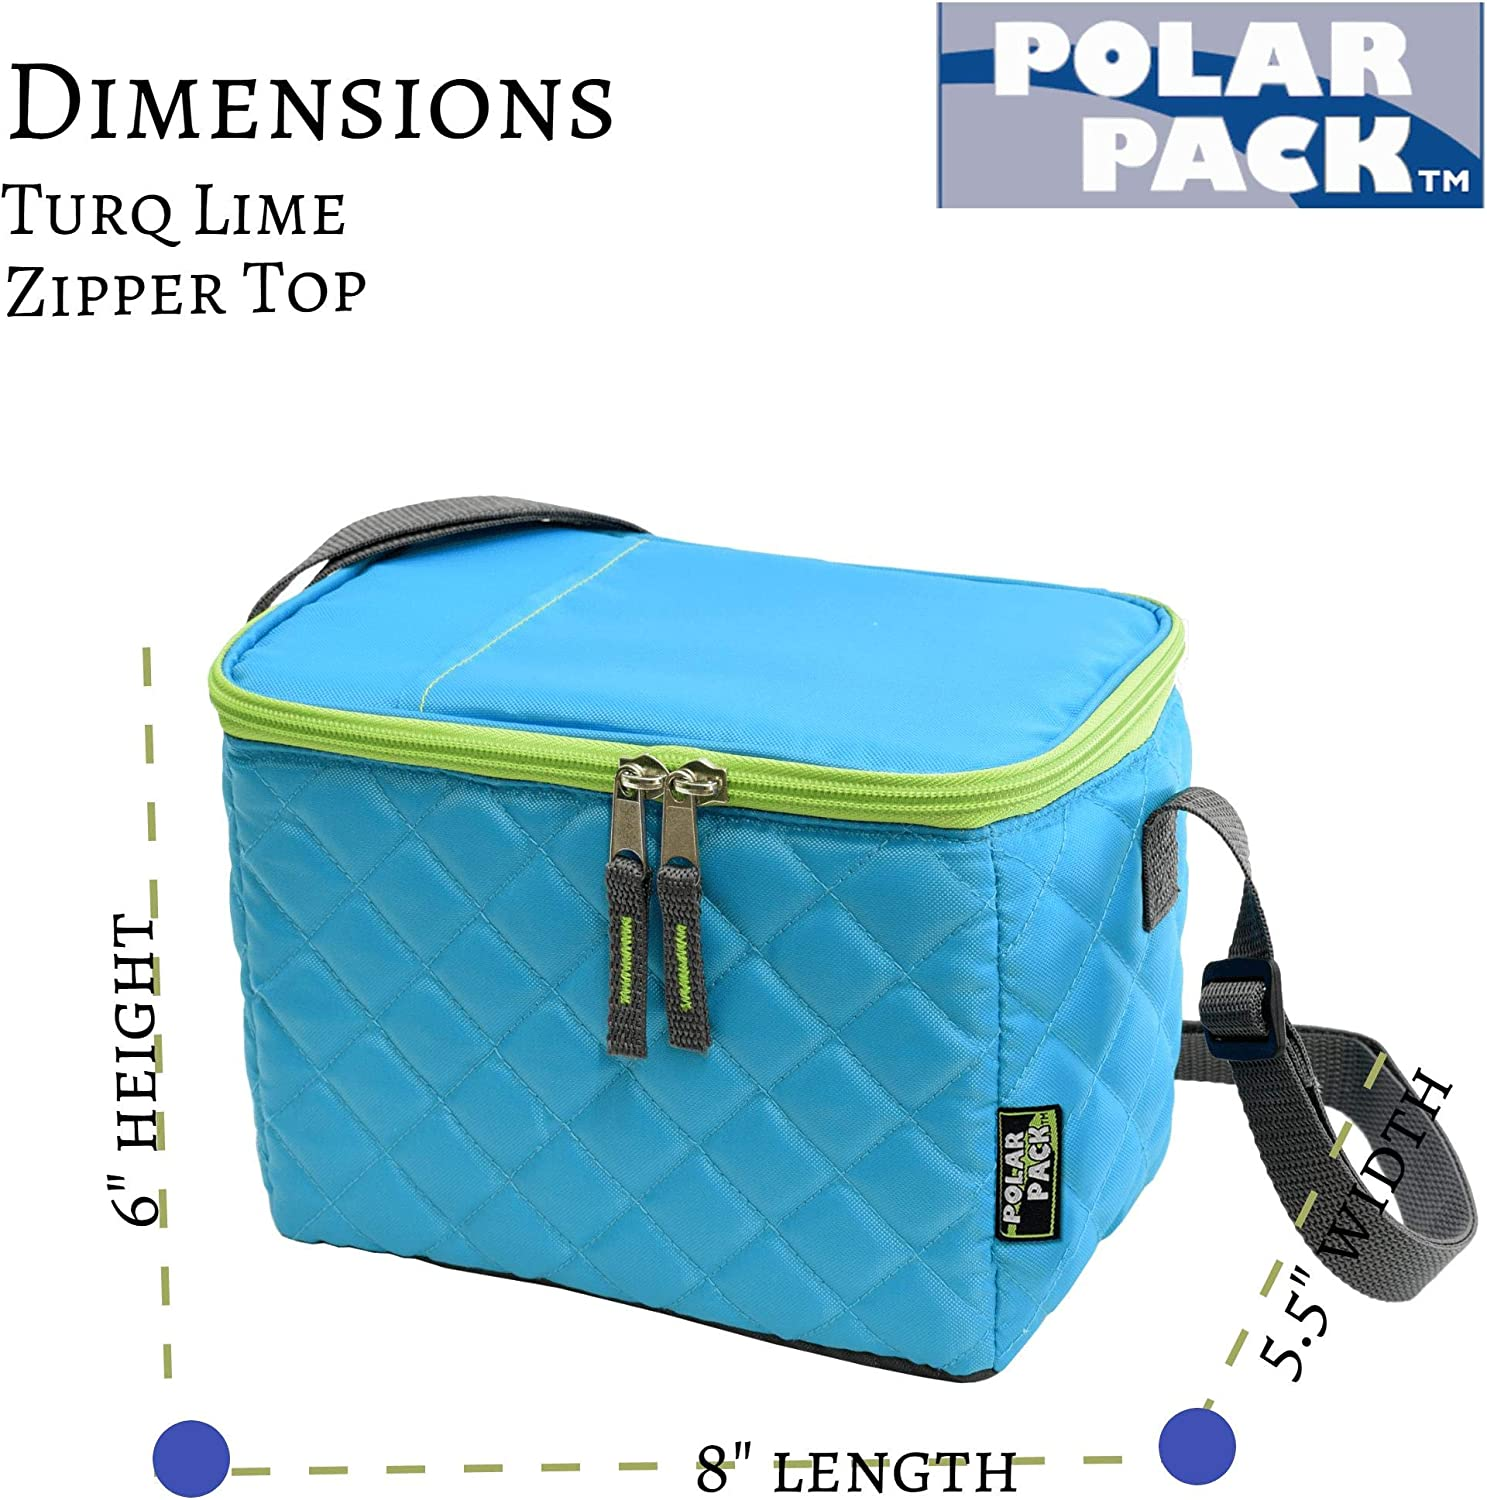 POLAR PACK Quilted 6 Can Cooler Handle Carry Cooler Bag Soft Portable Insulated Picnic Bag Outdoor Indoor Travel Lunch Box for Events Camping Hiking School Travel /& Sports